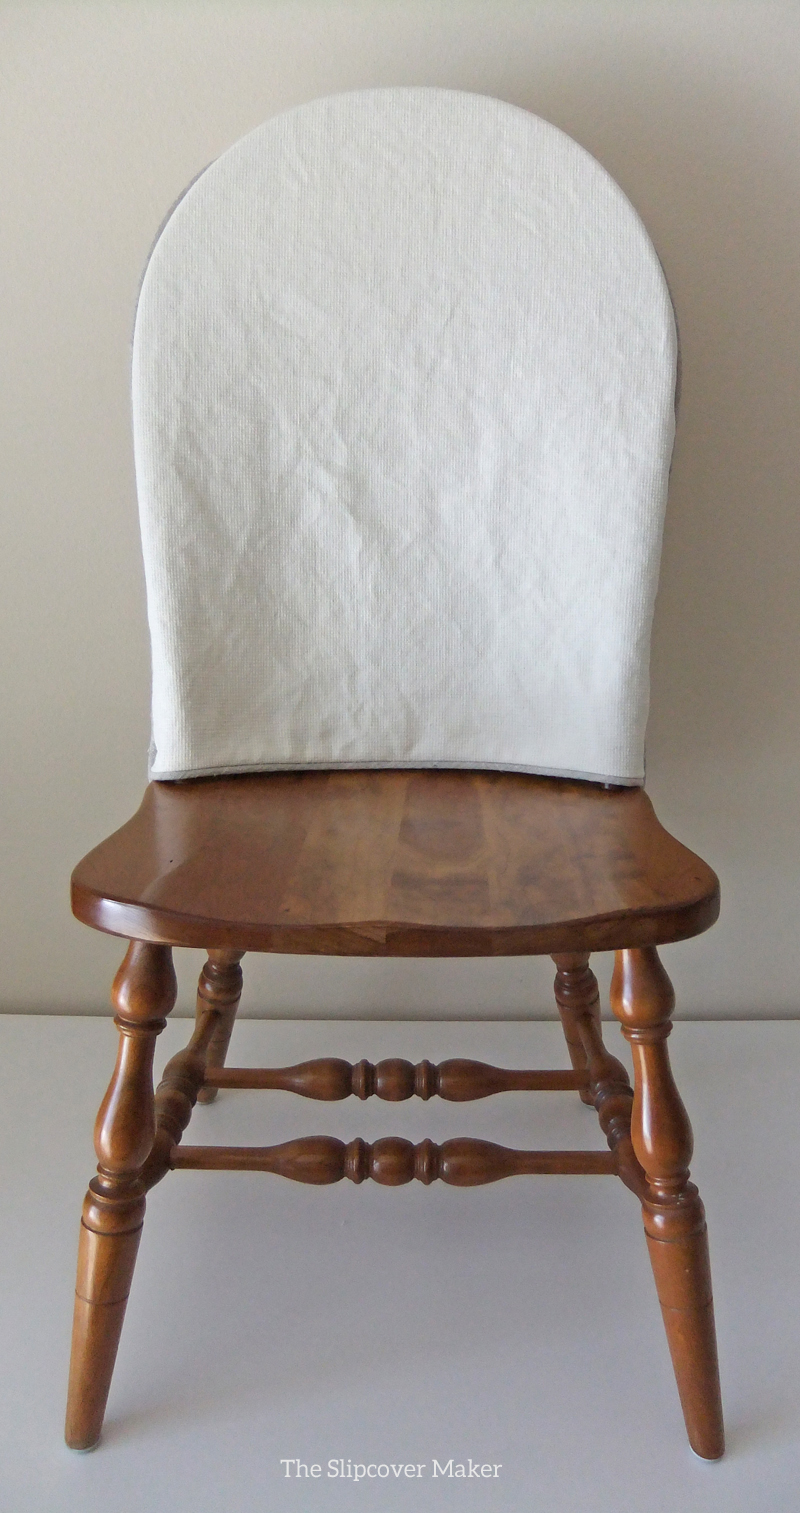 The Slipcover Maker Inspiring Furniture Makeovers From Karen 39 S Custom Slipcovers